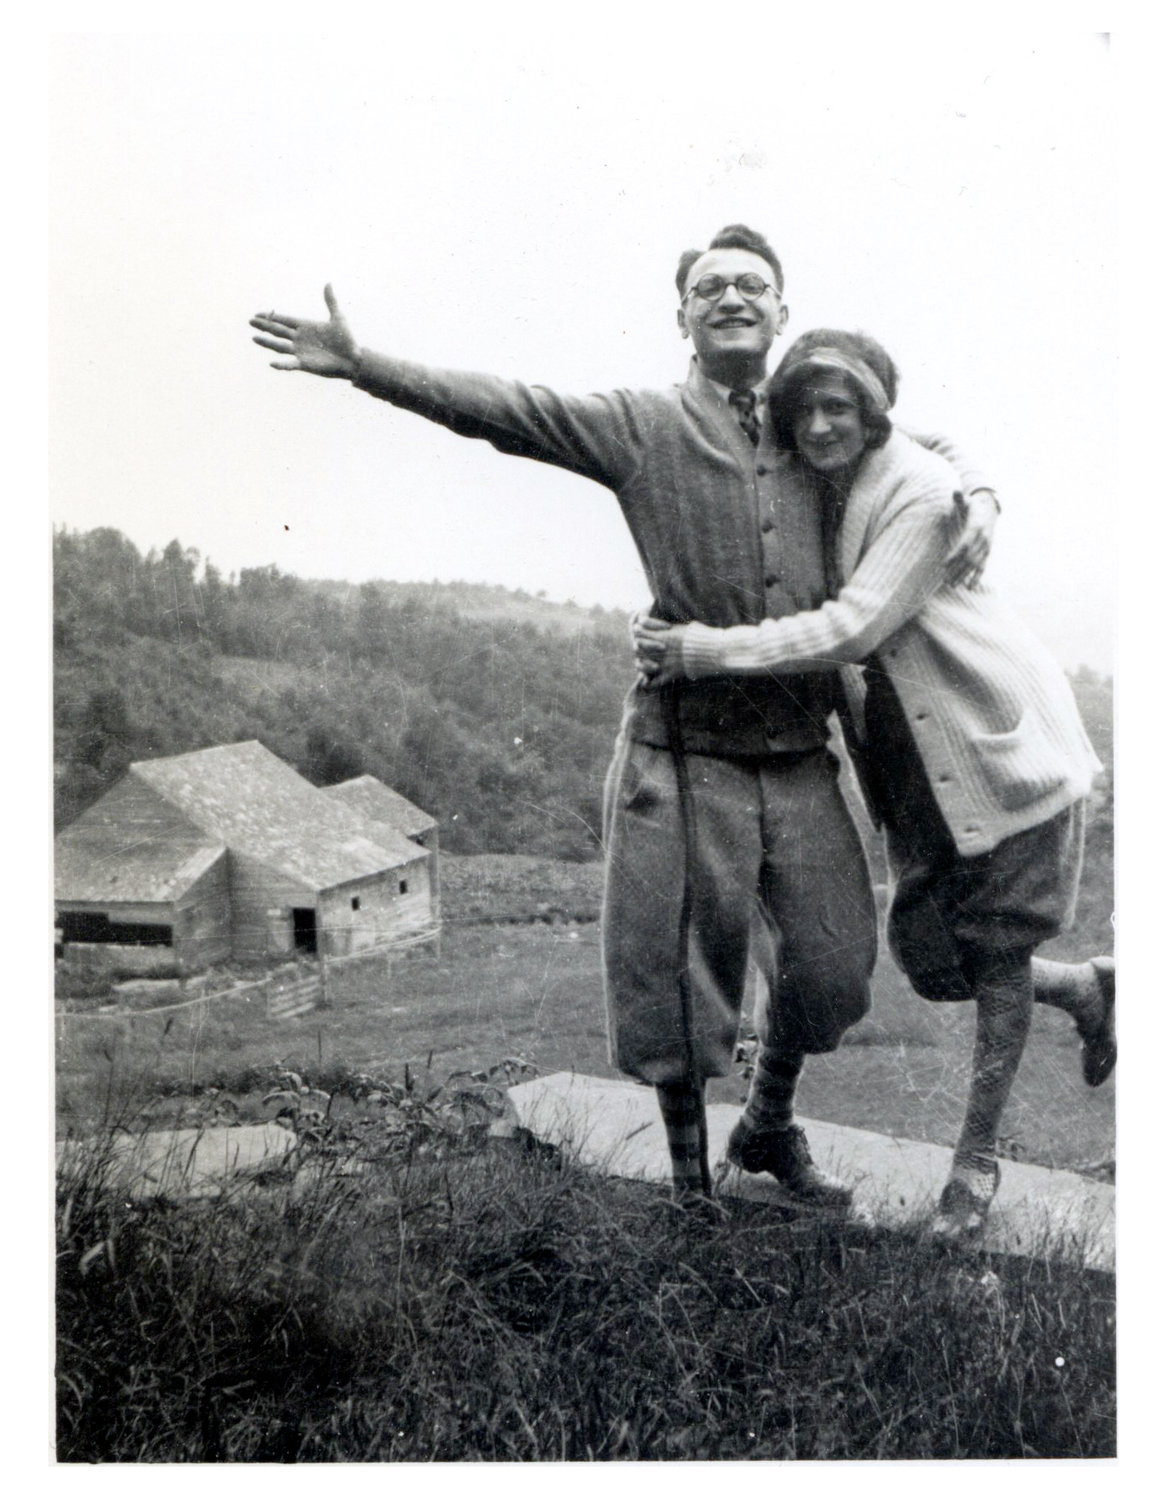 Moe Fink and Betty Cohen, Mike Fink's parents, eloping from Providence to Montreal in August 1926. It was taken at the Vermont inn.